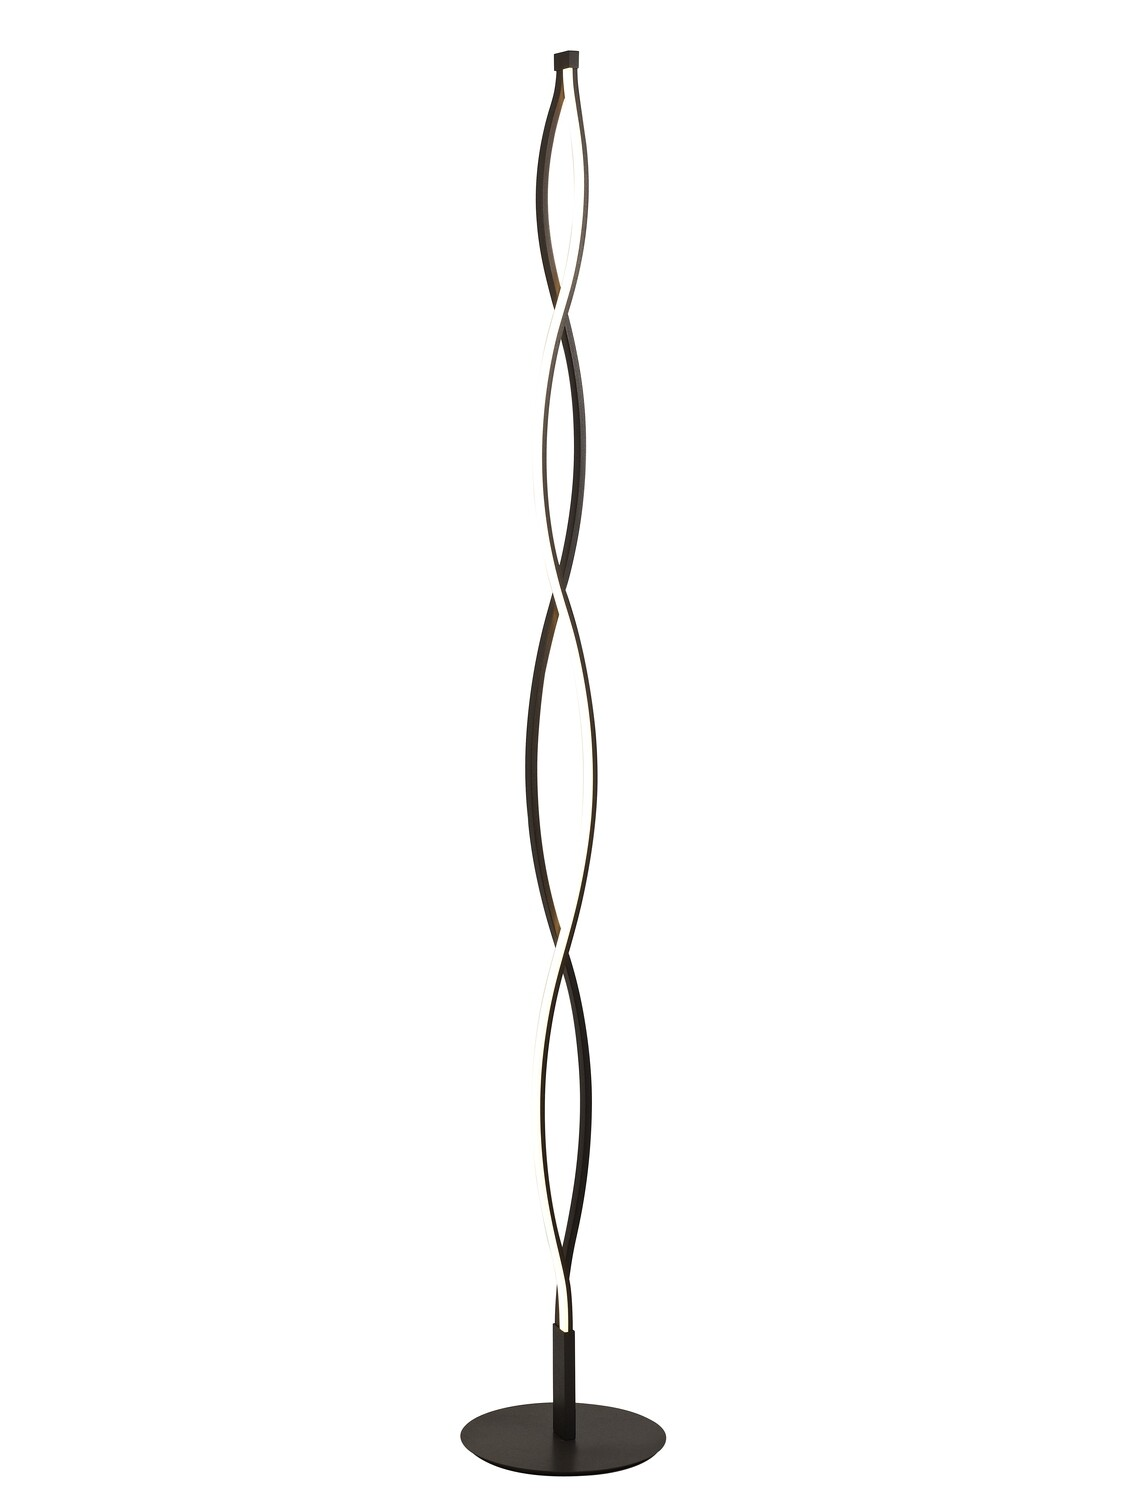 Sahara XL Floor Lamp 28W LED 2800K, 2200lm, Dimmable Frosted Acrylic/Brown Oxide